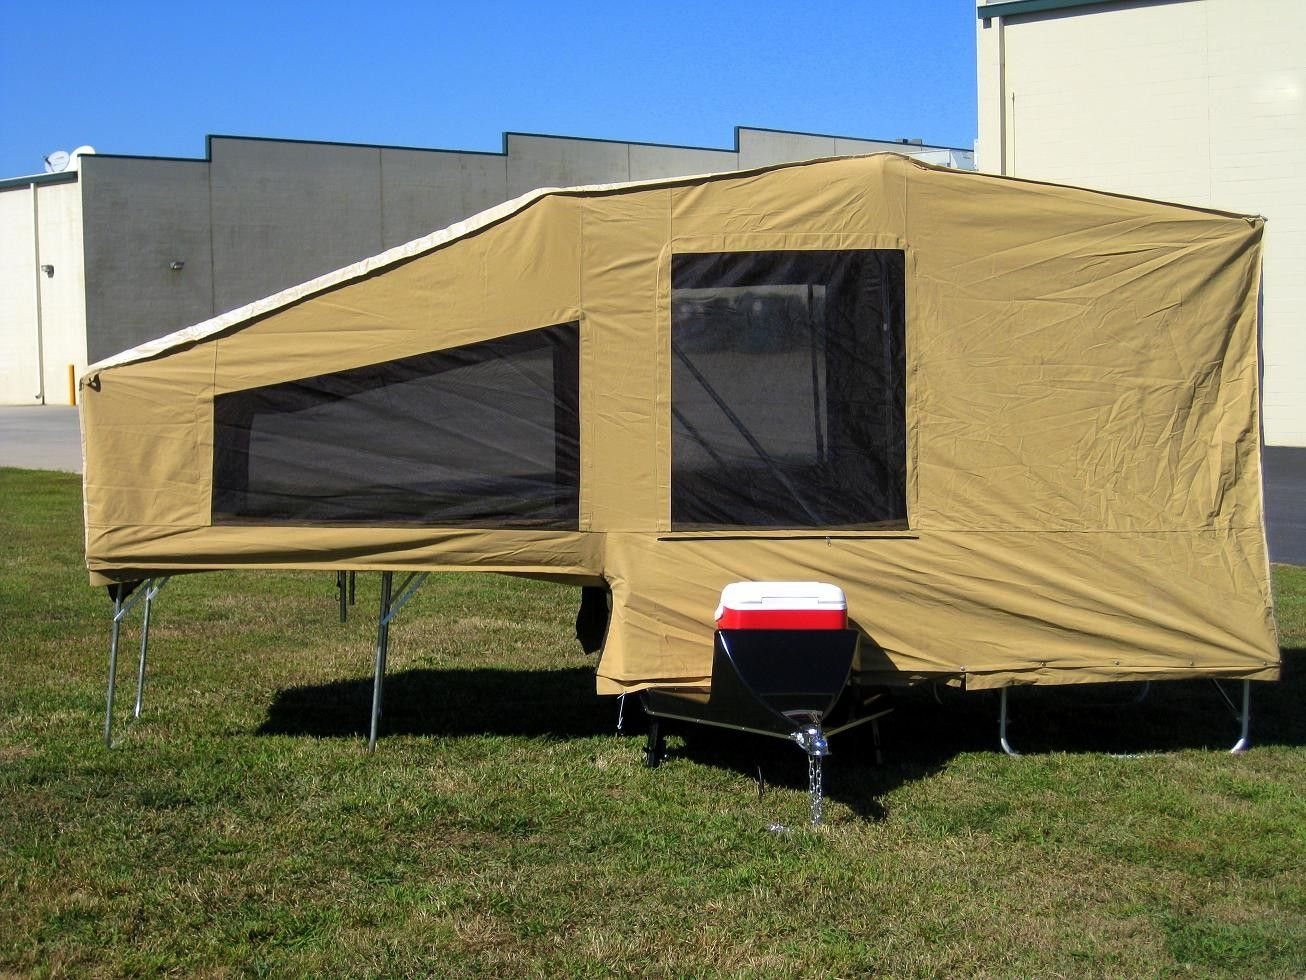 solace pull behind motorcycle camper trailer 2675 motorcycle trip pinterest motorcycle. Black Bedroom Furniture Sets. Home Design Ideas